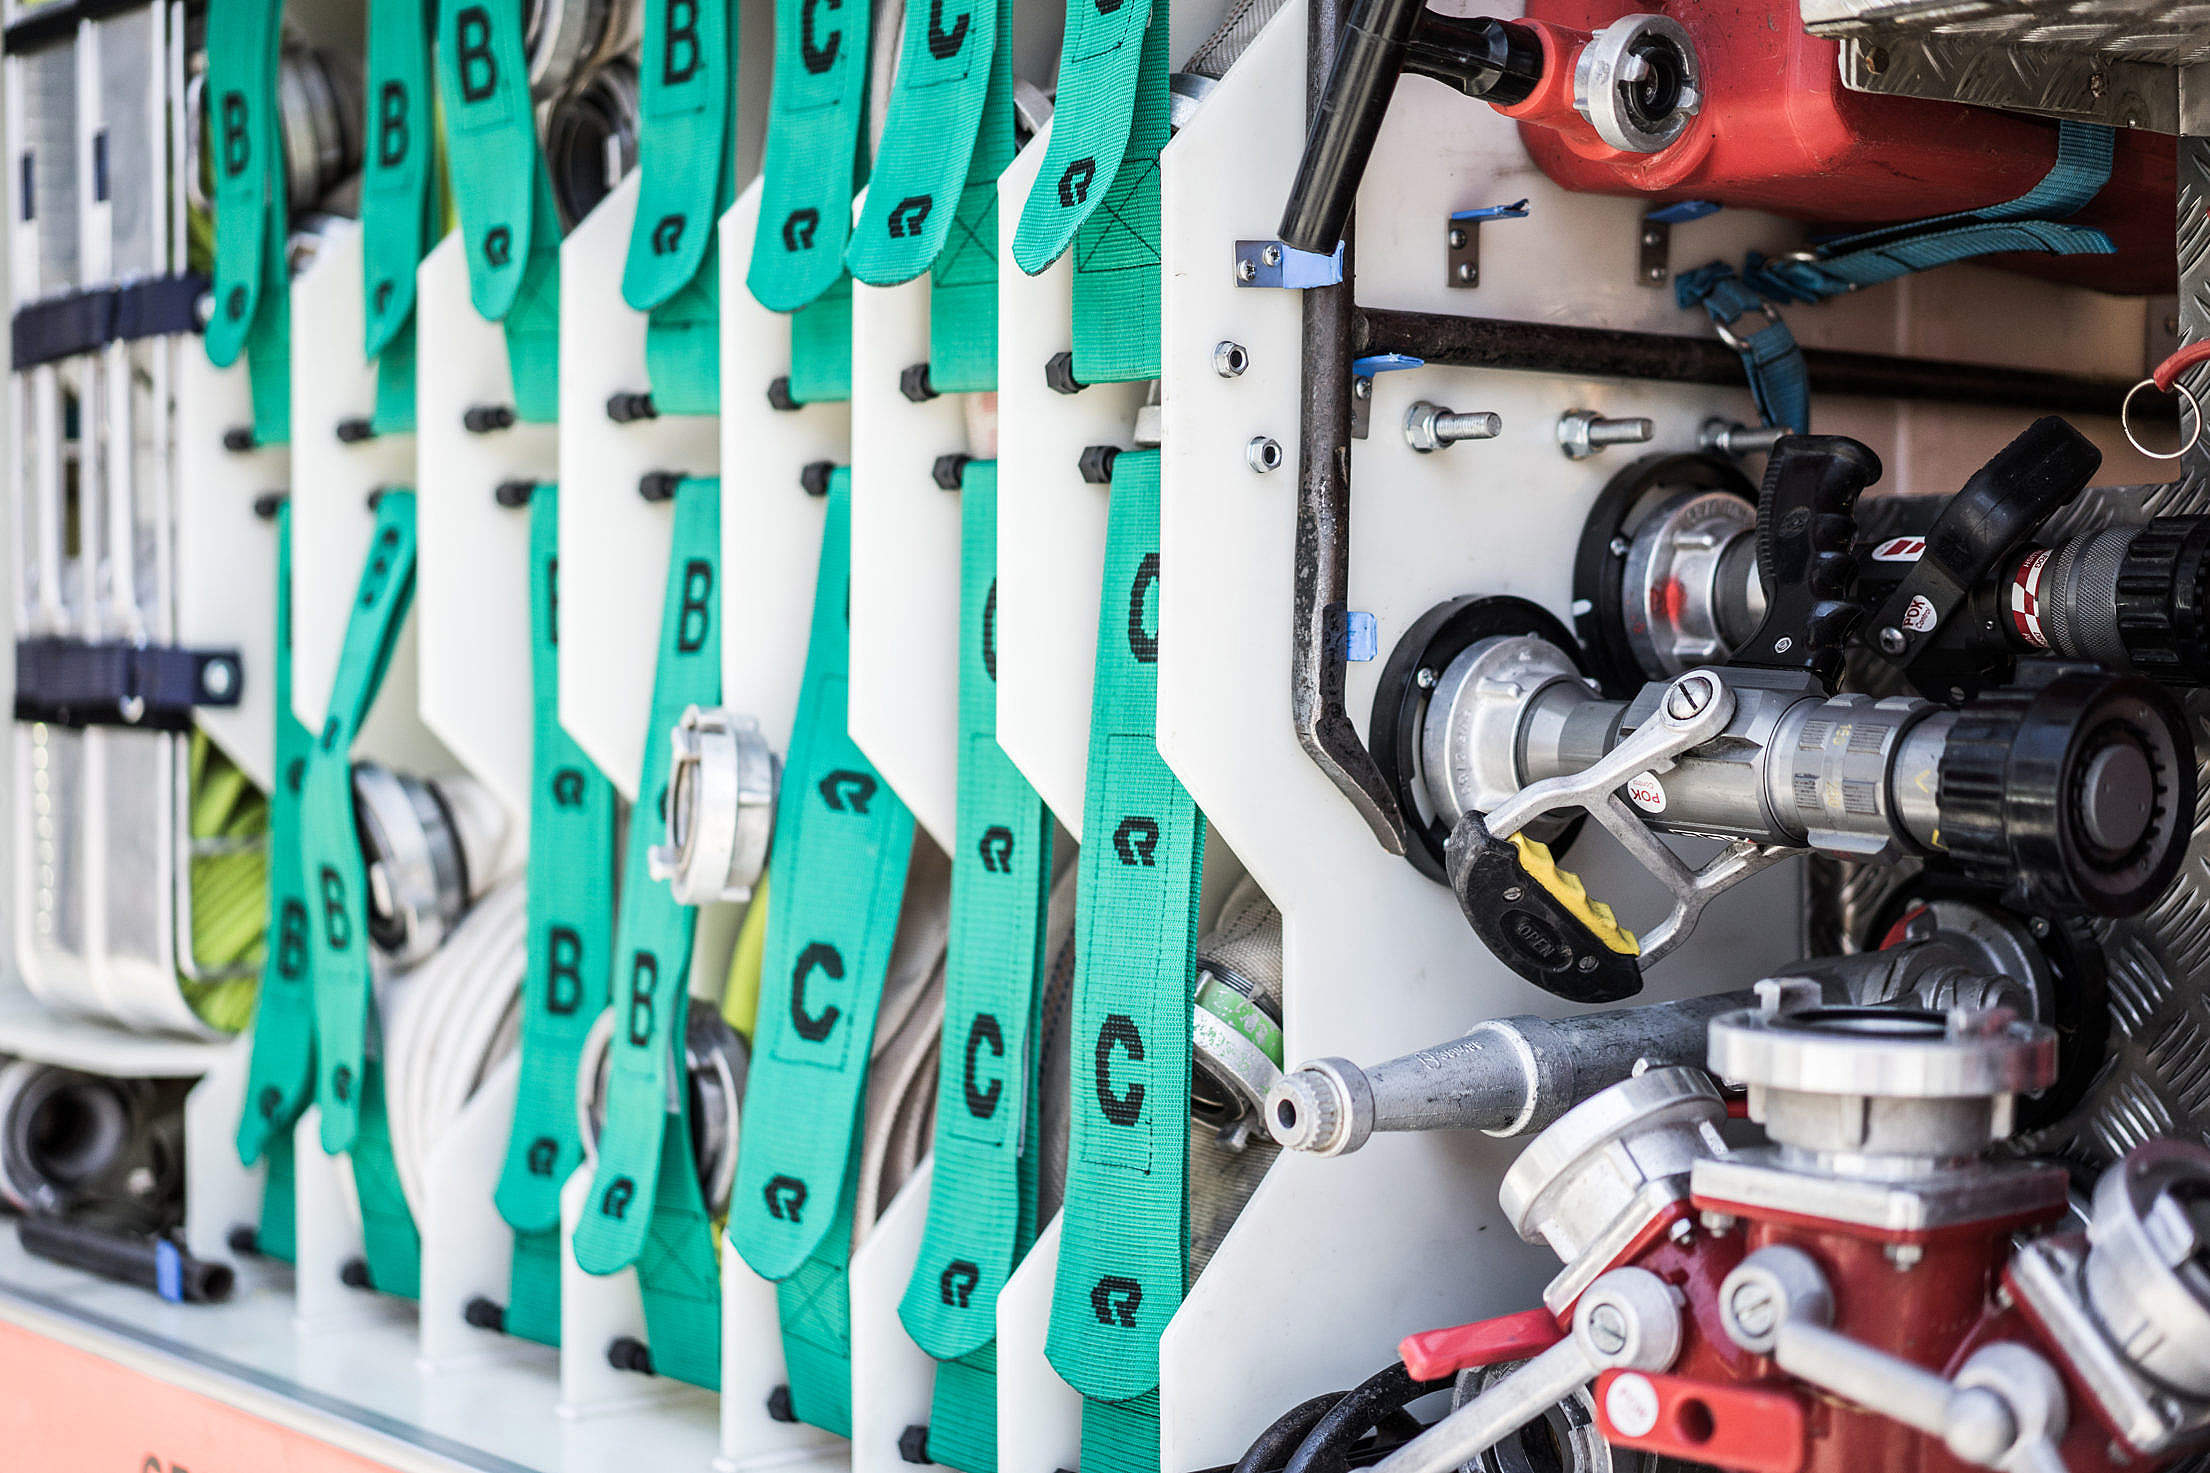 Fire Truck Equipment Close Up Free Stock Photo